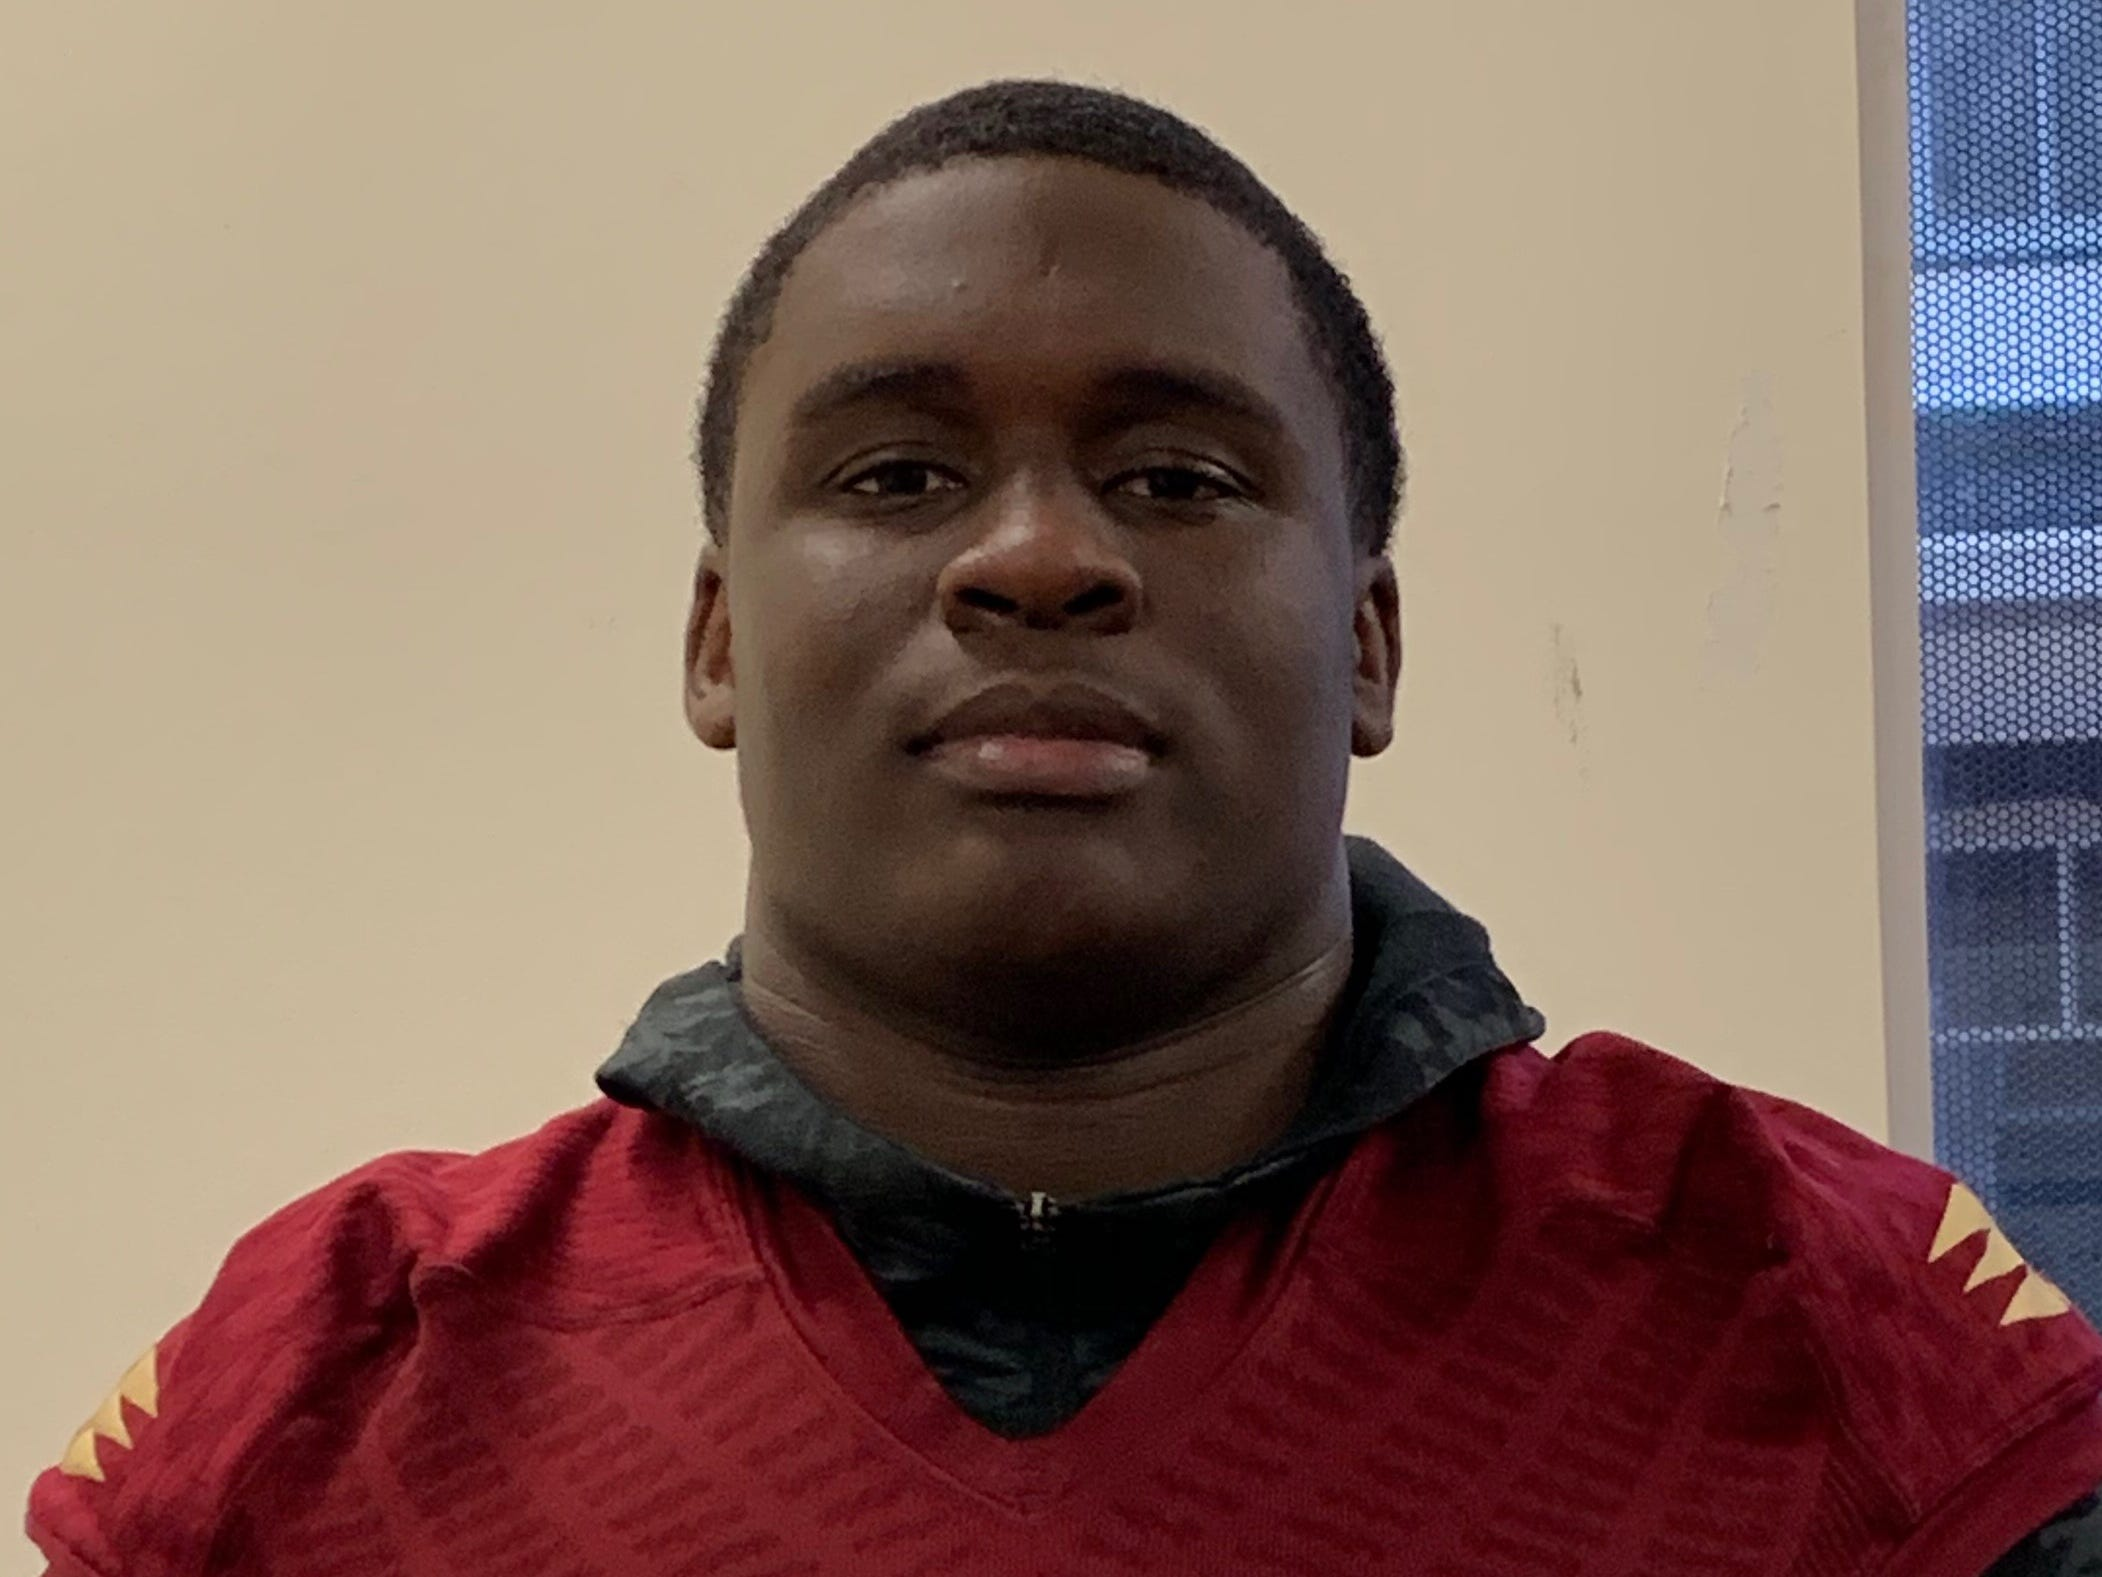 Florida High senior offensive lineman Anthony Belton was named to the 2018 All-Big Bend football first team for offense. STATS: 87%, 64 pancakes, 76 knockdowns